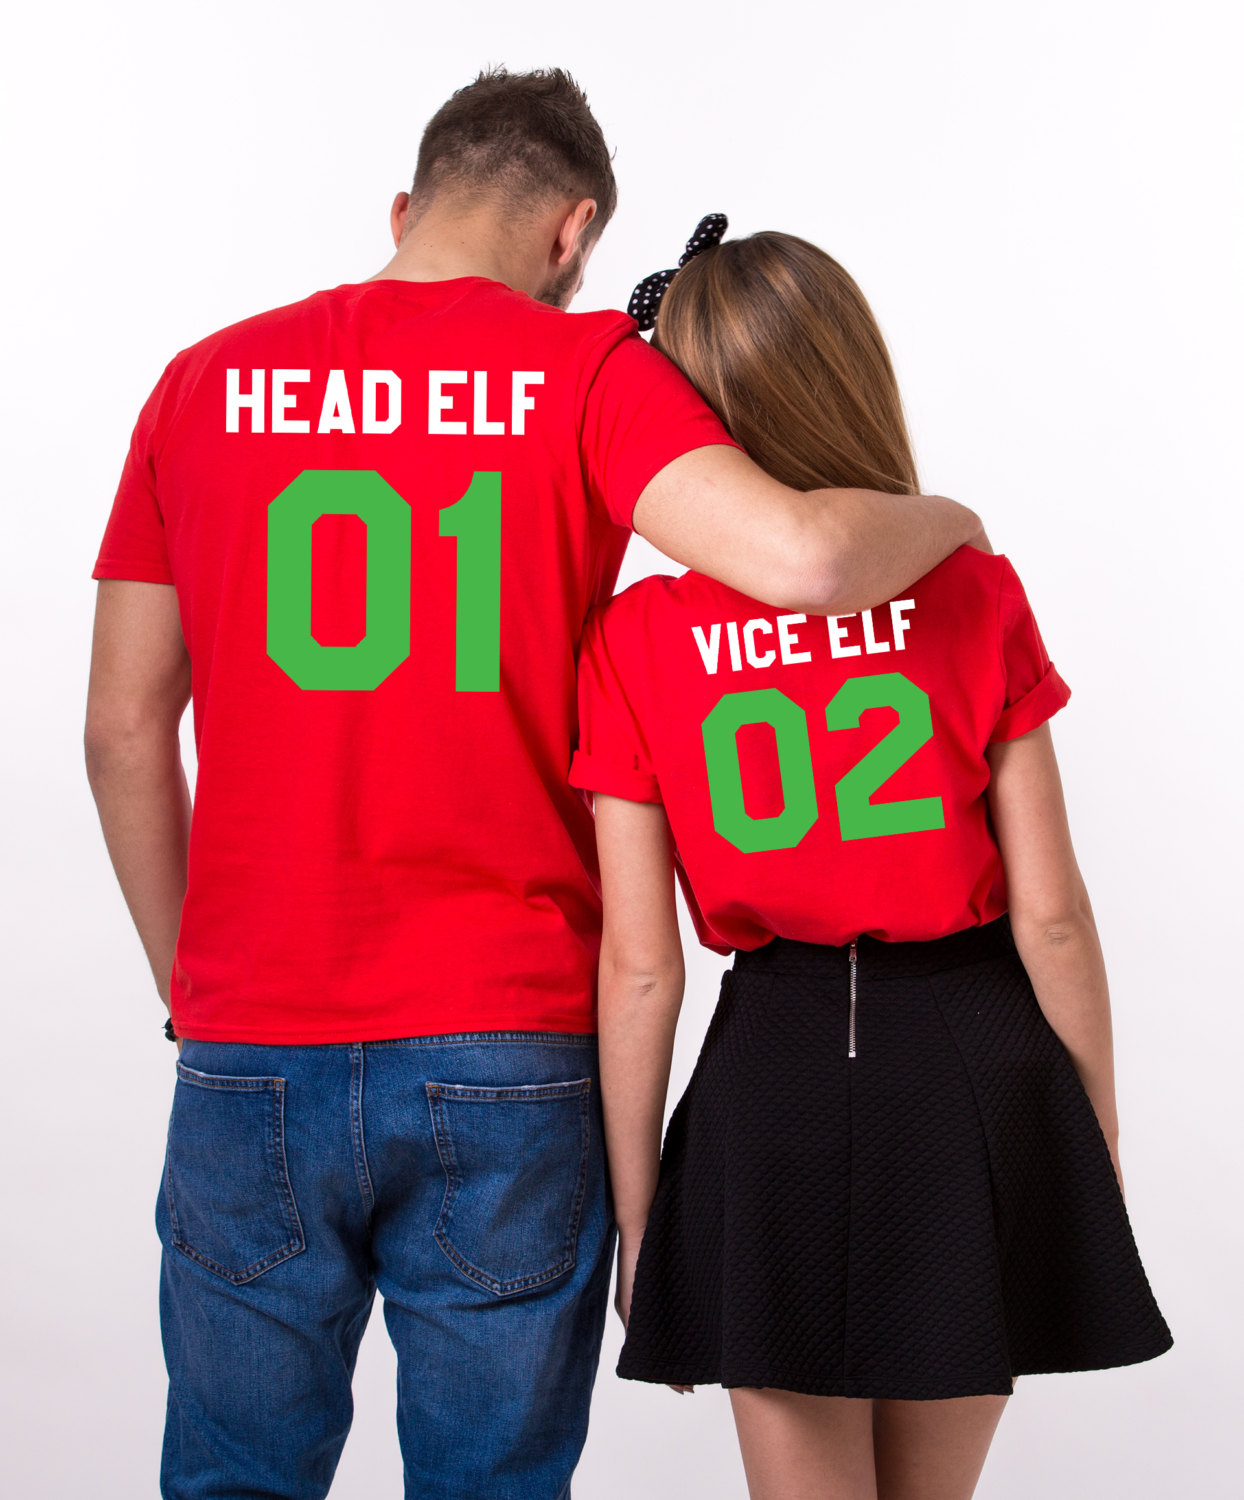 Christmas Outfits.Head Elf Vice Elf Matching Couples Christmas Outfits